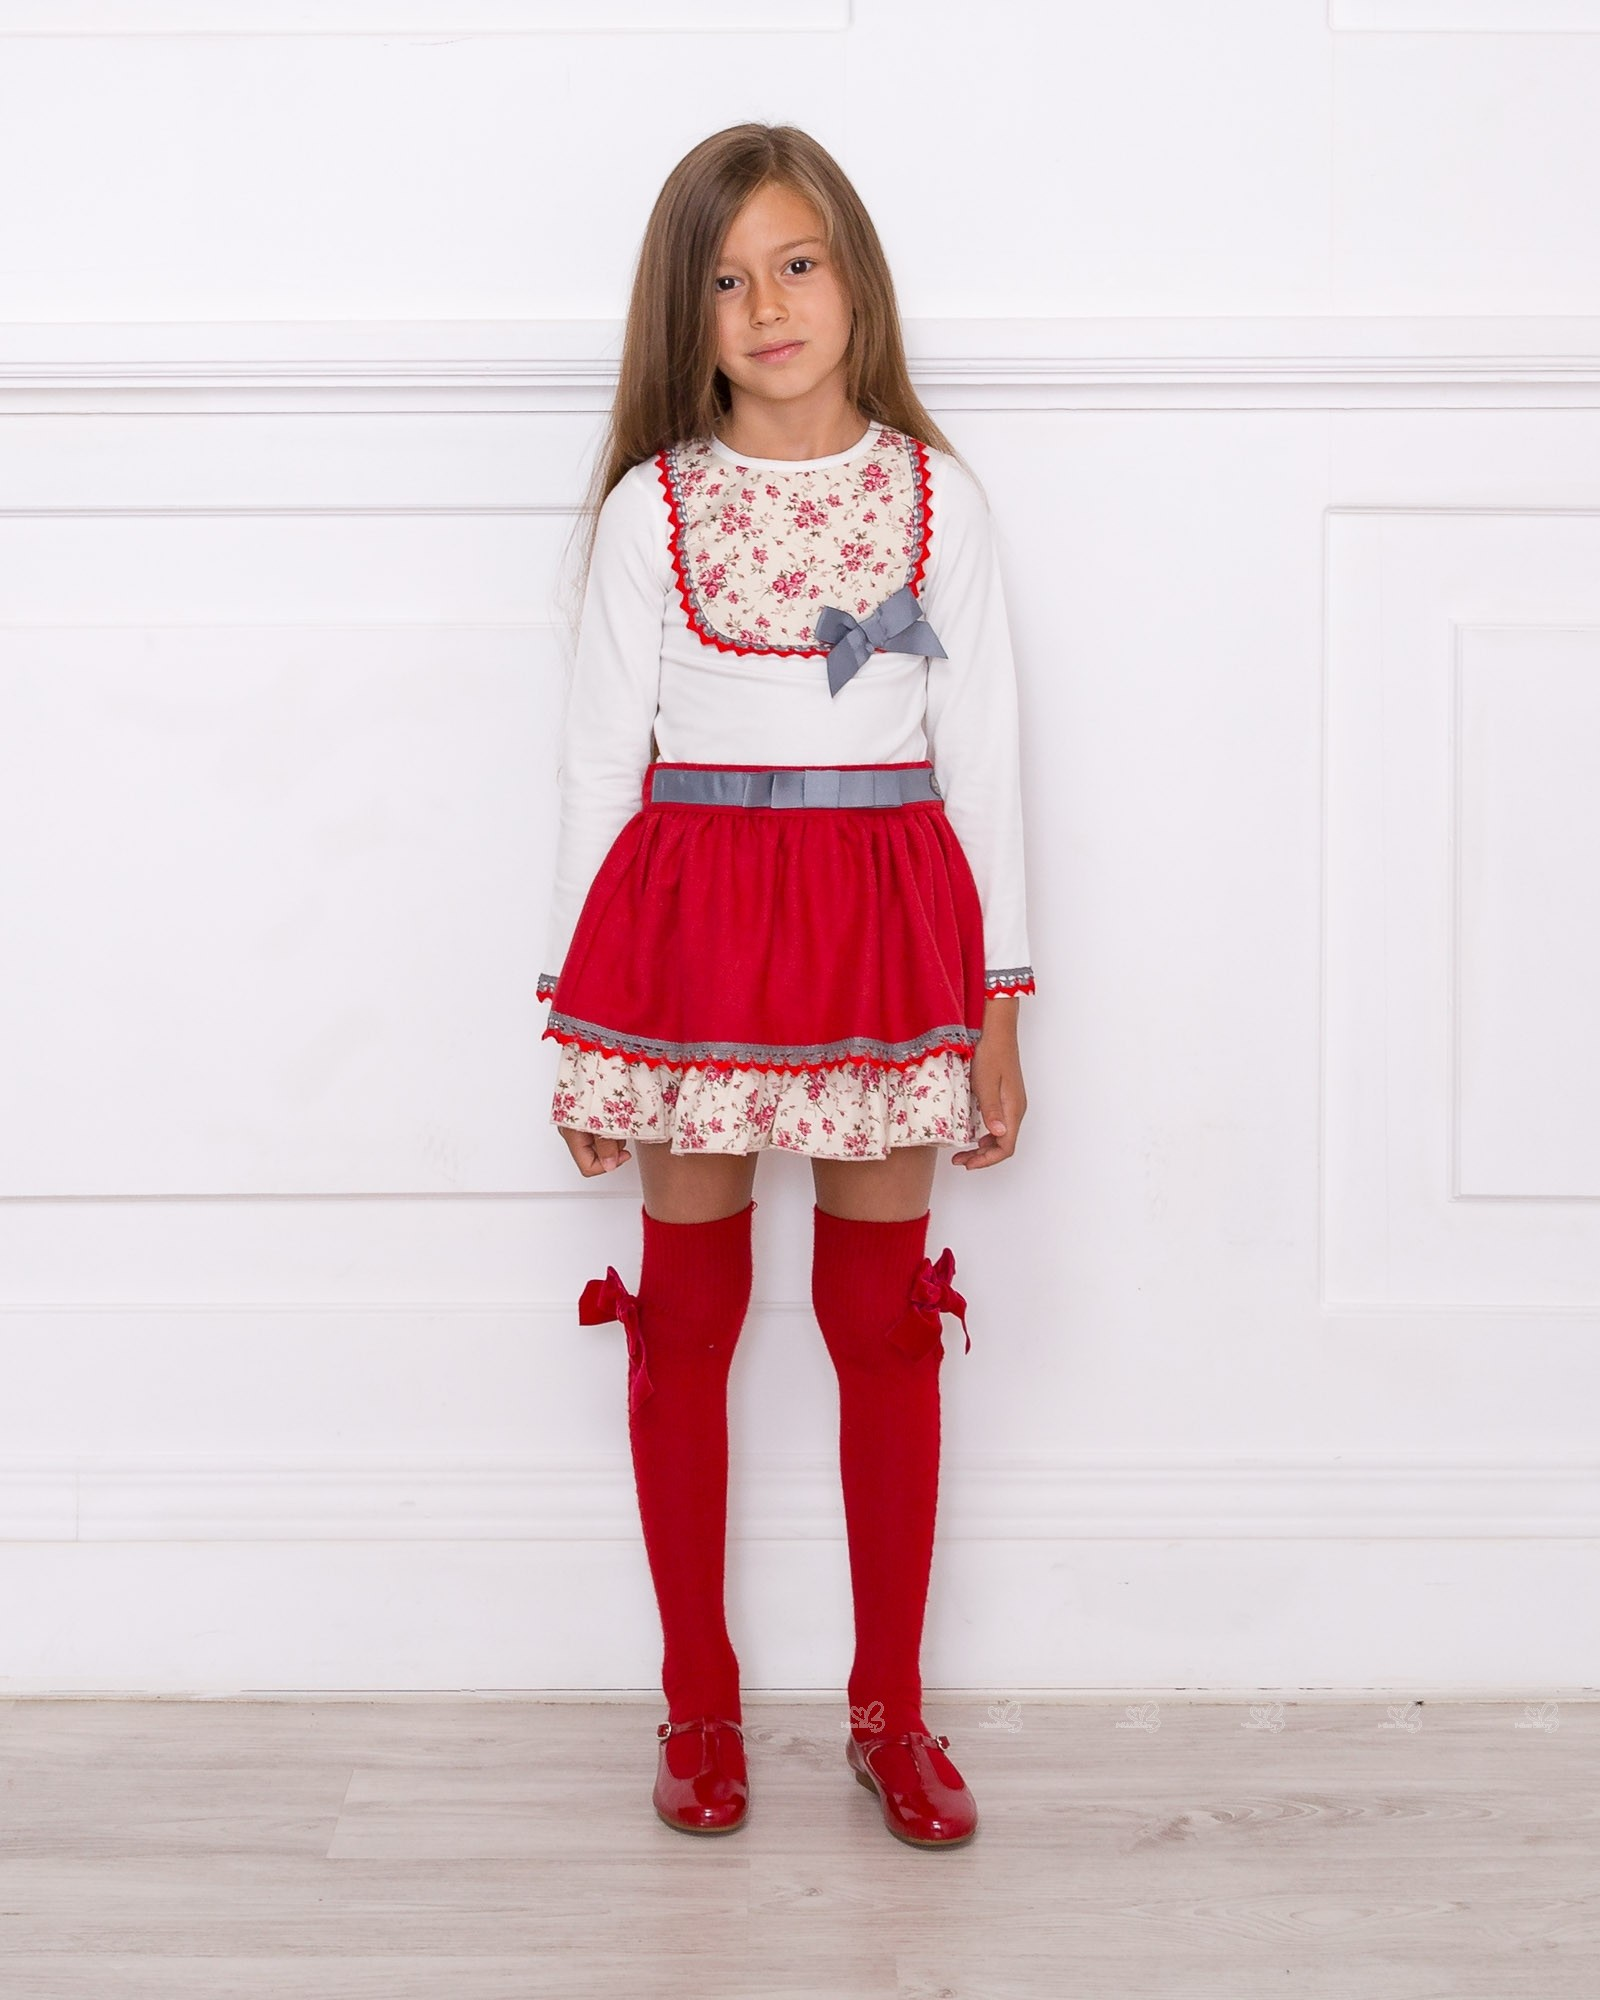 Outlet New Jersey >> Girls Ivory Decorated T-Shirt & Red Ruffle Skirt Set Outfit | Missbaby